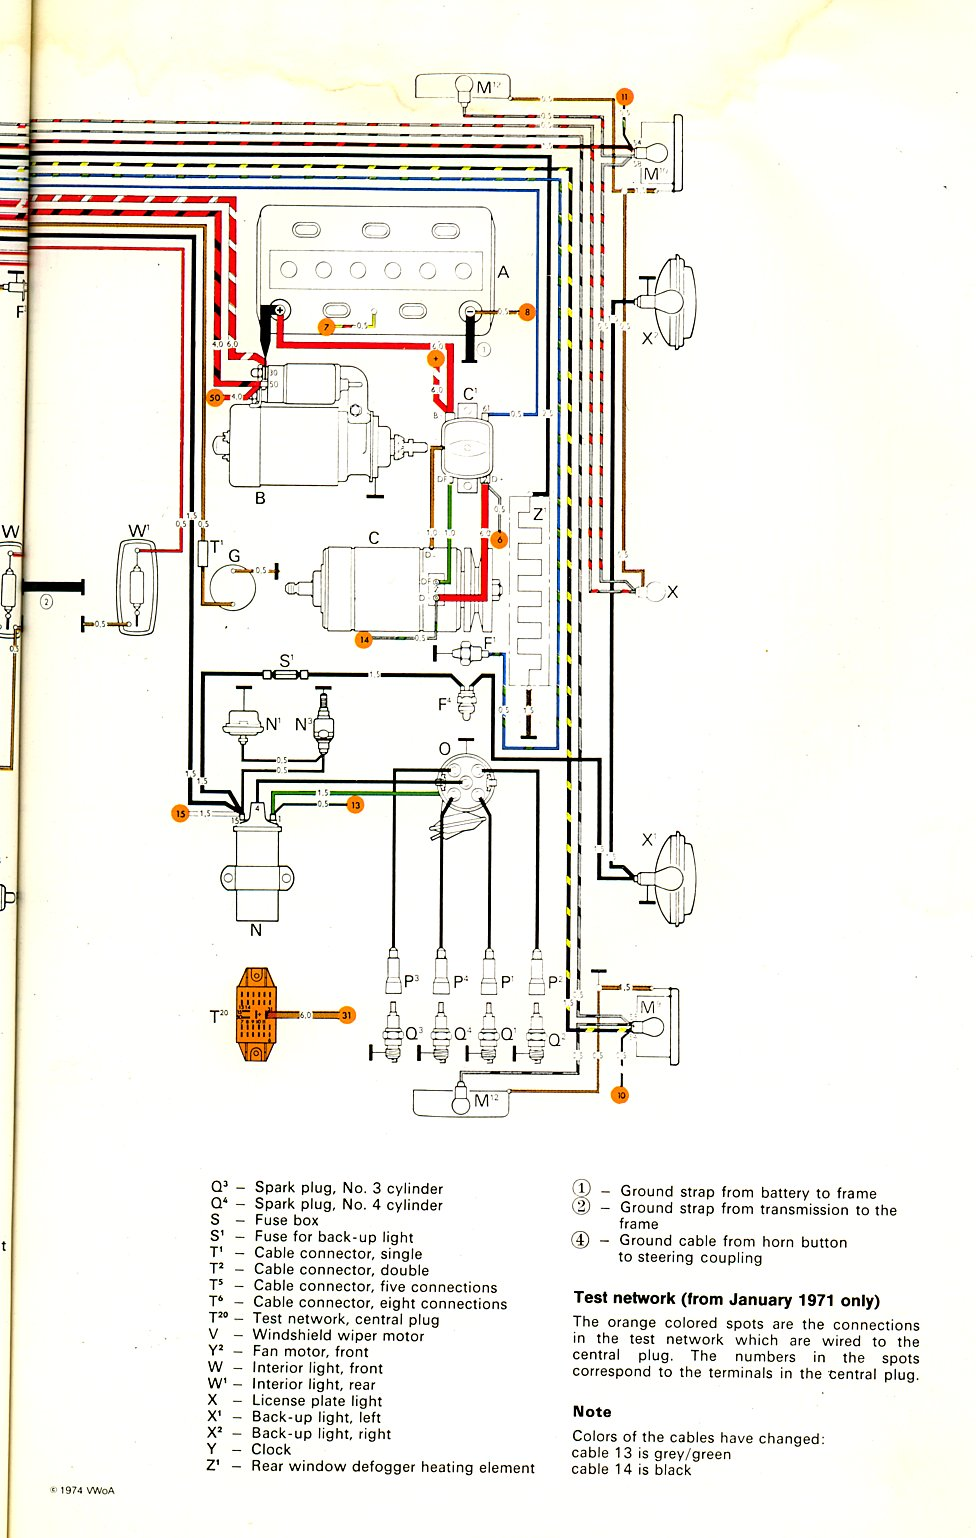 baybus_71b newport wipers wiring diagram pin wiring diagram \u2022 wiring diagrams subaru vanagon conversion wiring diagrams at mifinder.co